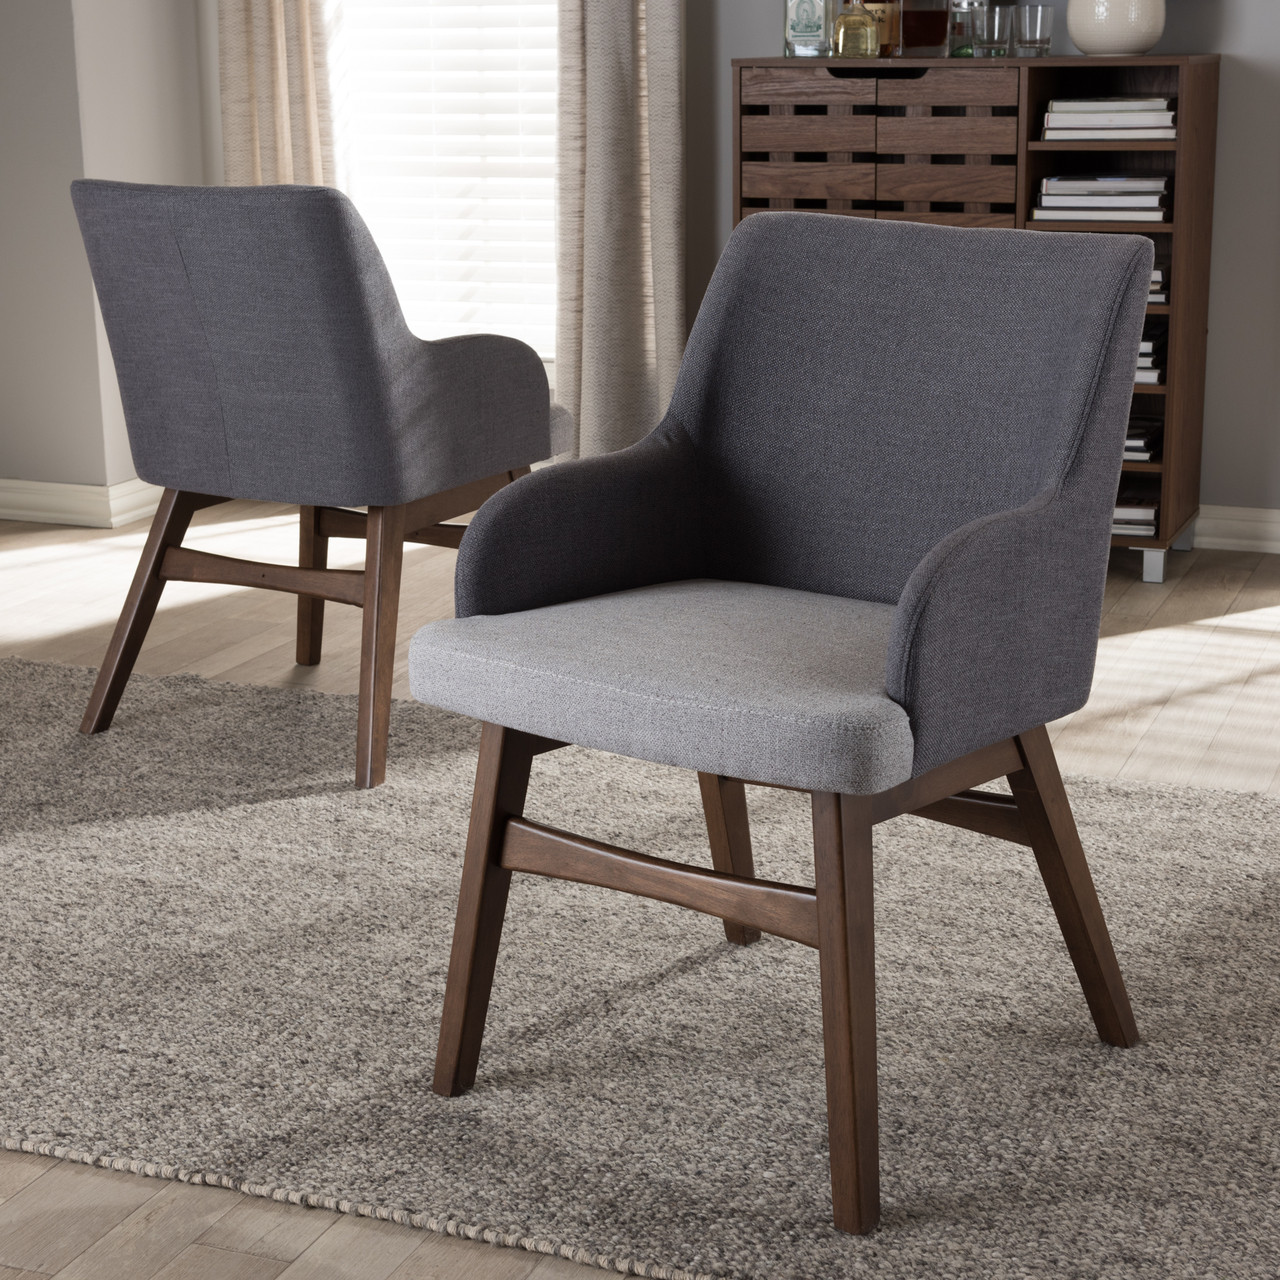 71e06f3e5828 Baxton Studio Monte Mid-Century Modern Two-Tone Grey Fabric Armchair -  DealBeds.com